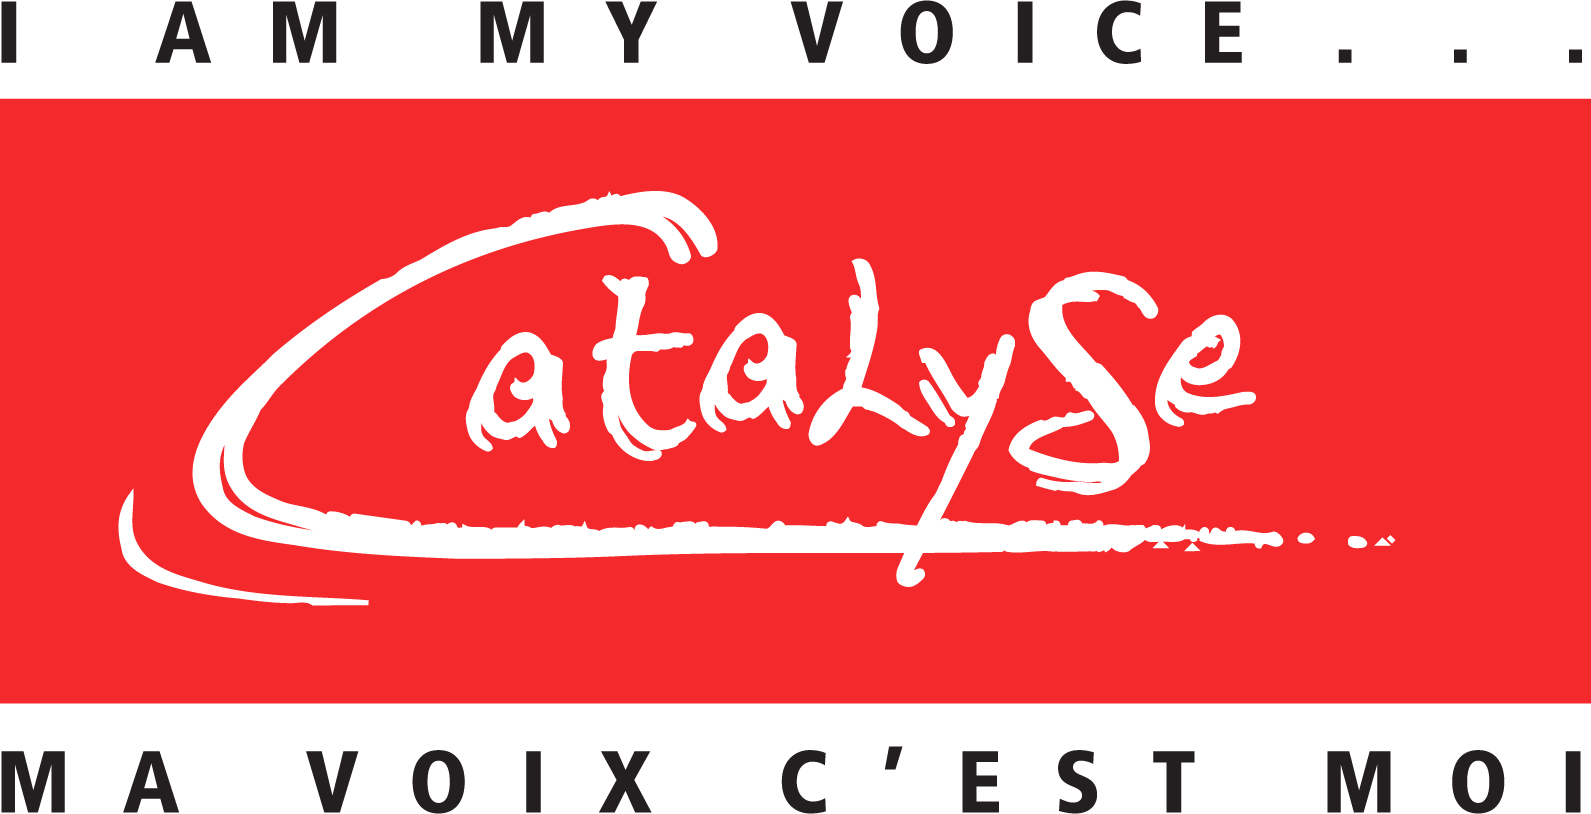 Catalyse - Studio d'enregistrement